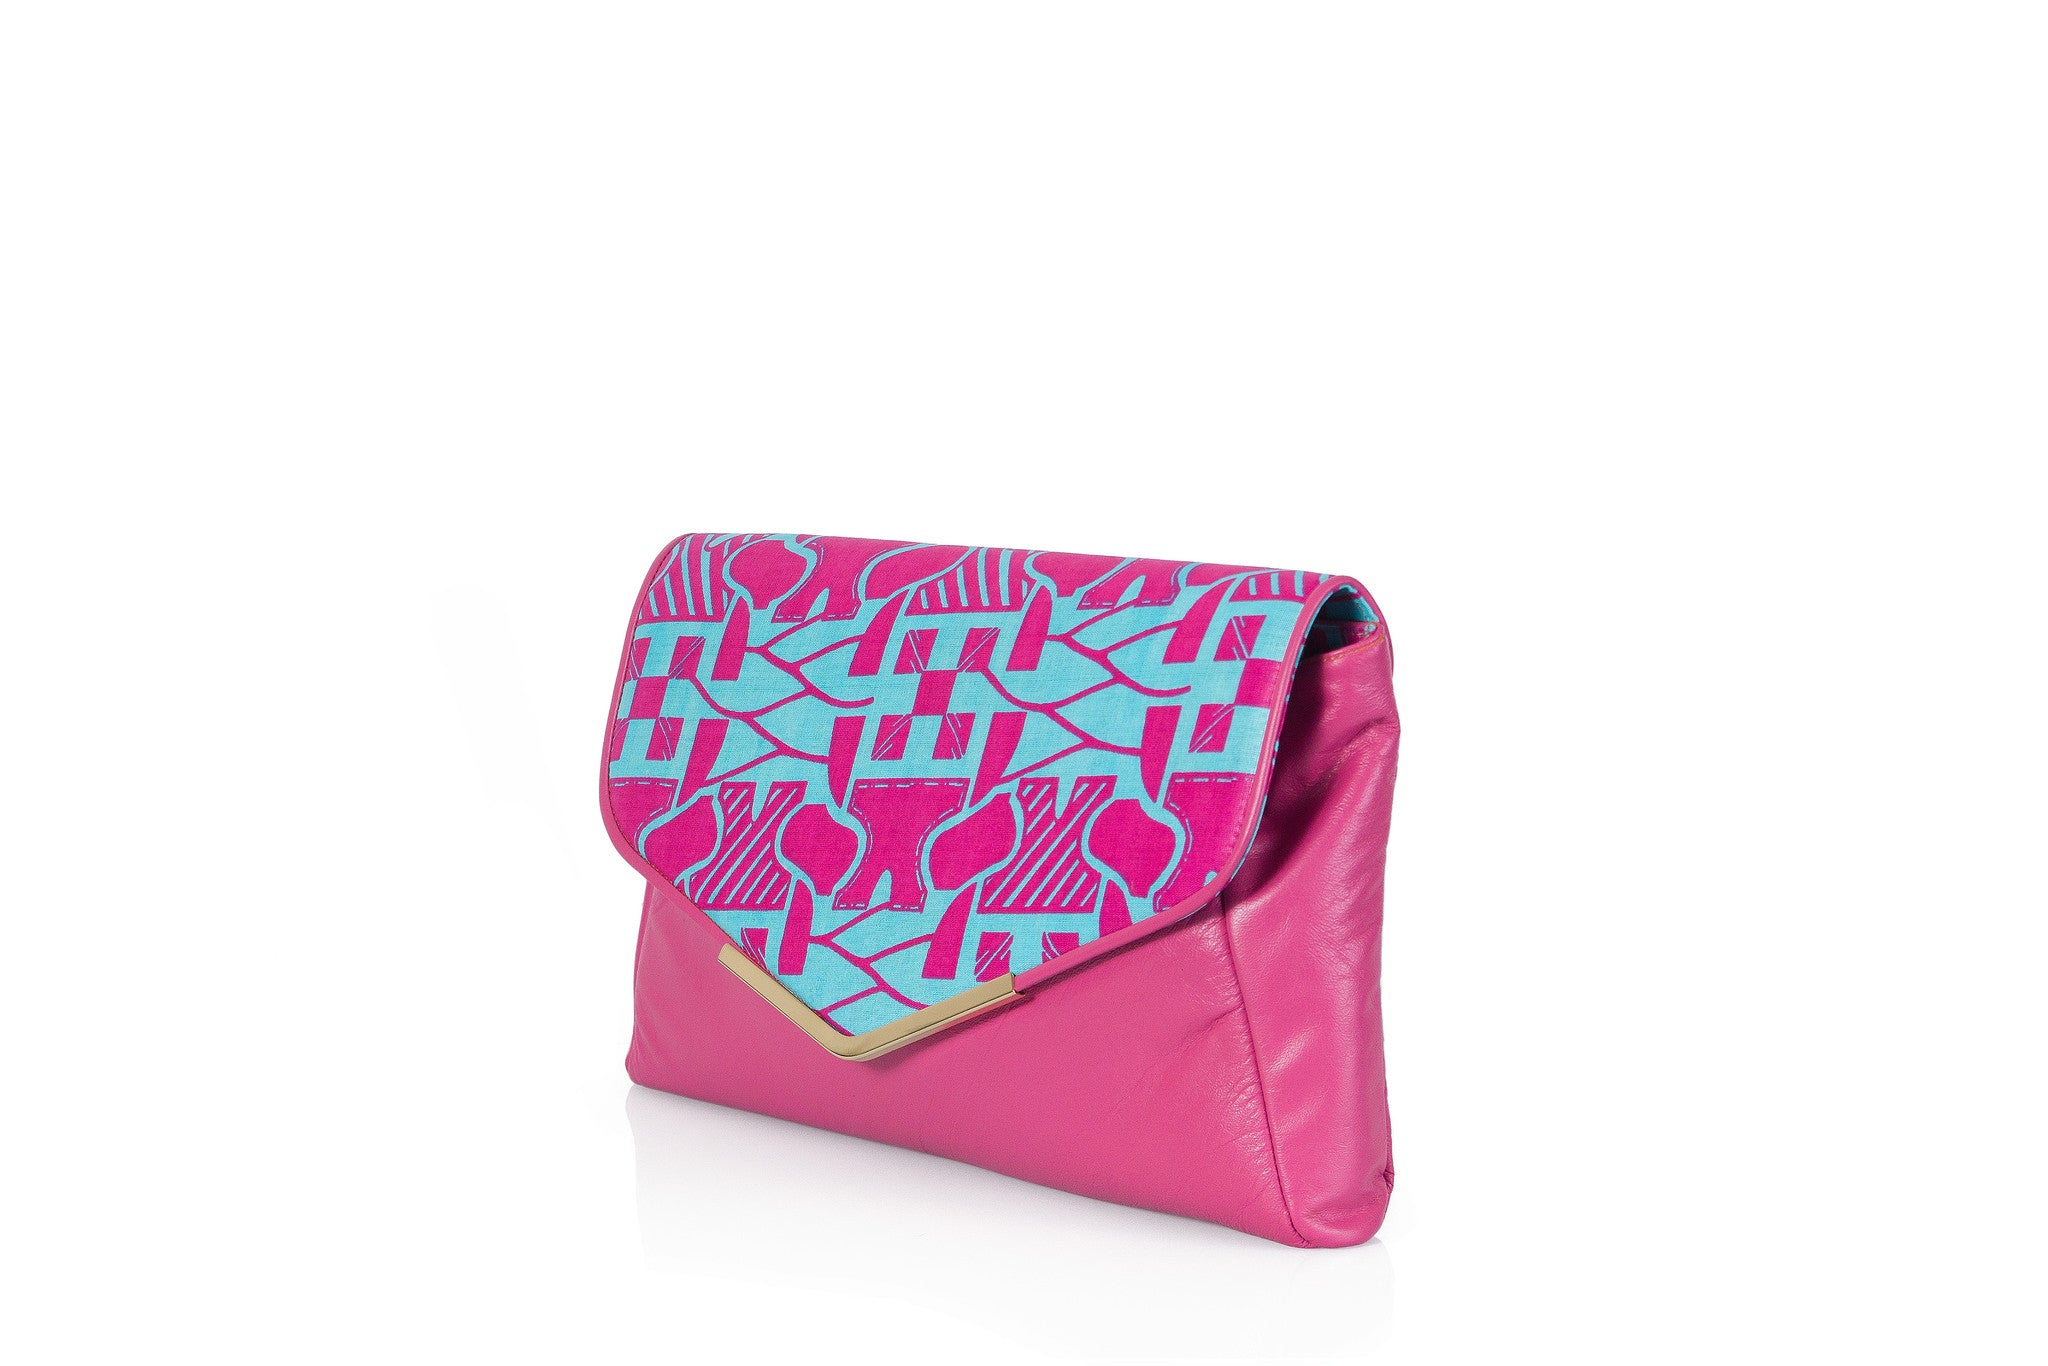 Fuchsia dreams print envelope clutch